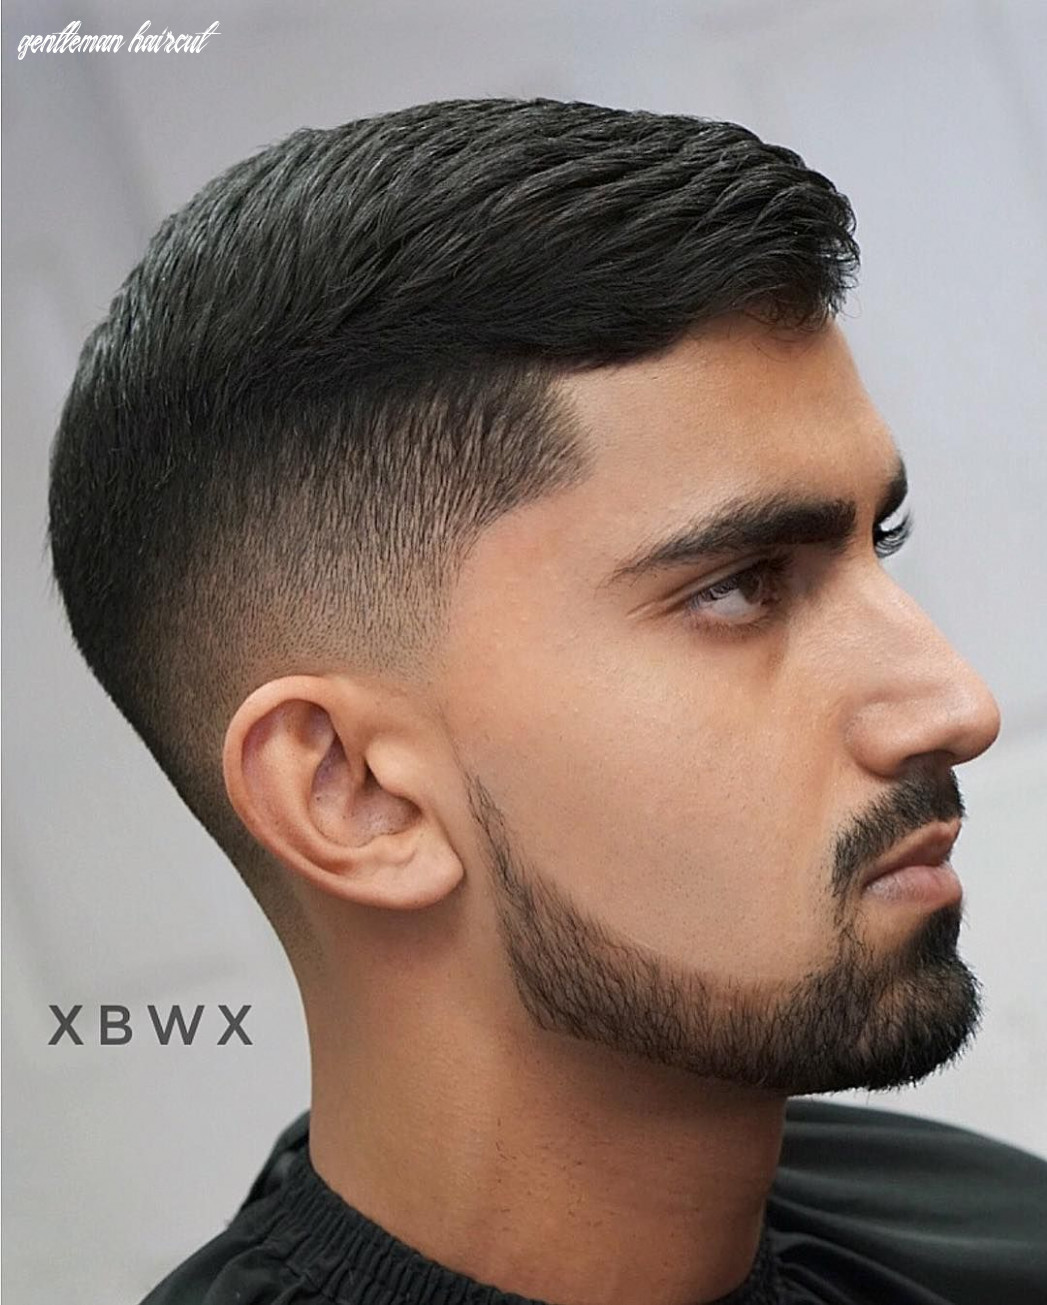 The gentleman haircut | gentleman haircut, beard styles for men